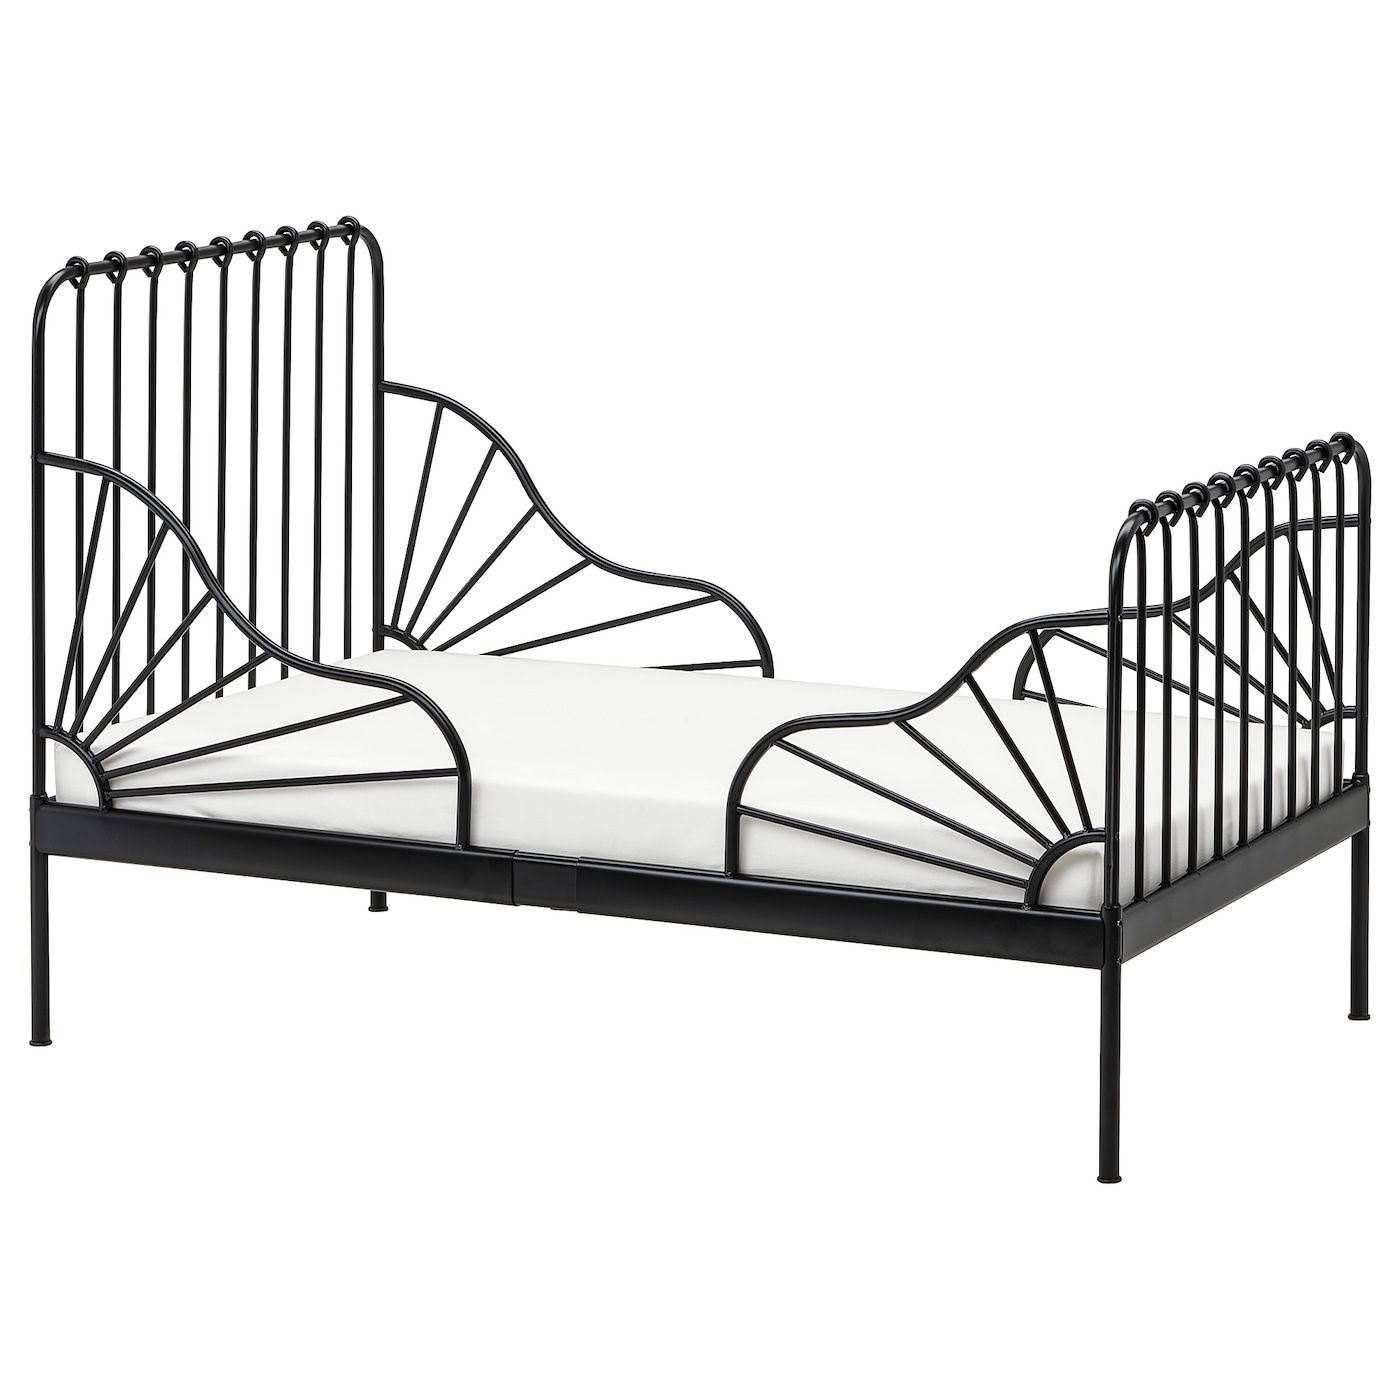 Ext Bed Frame With Slatted Bed Base Black 38 1 4x74 3 4 In